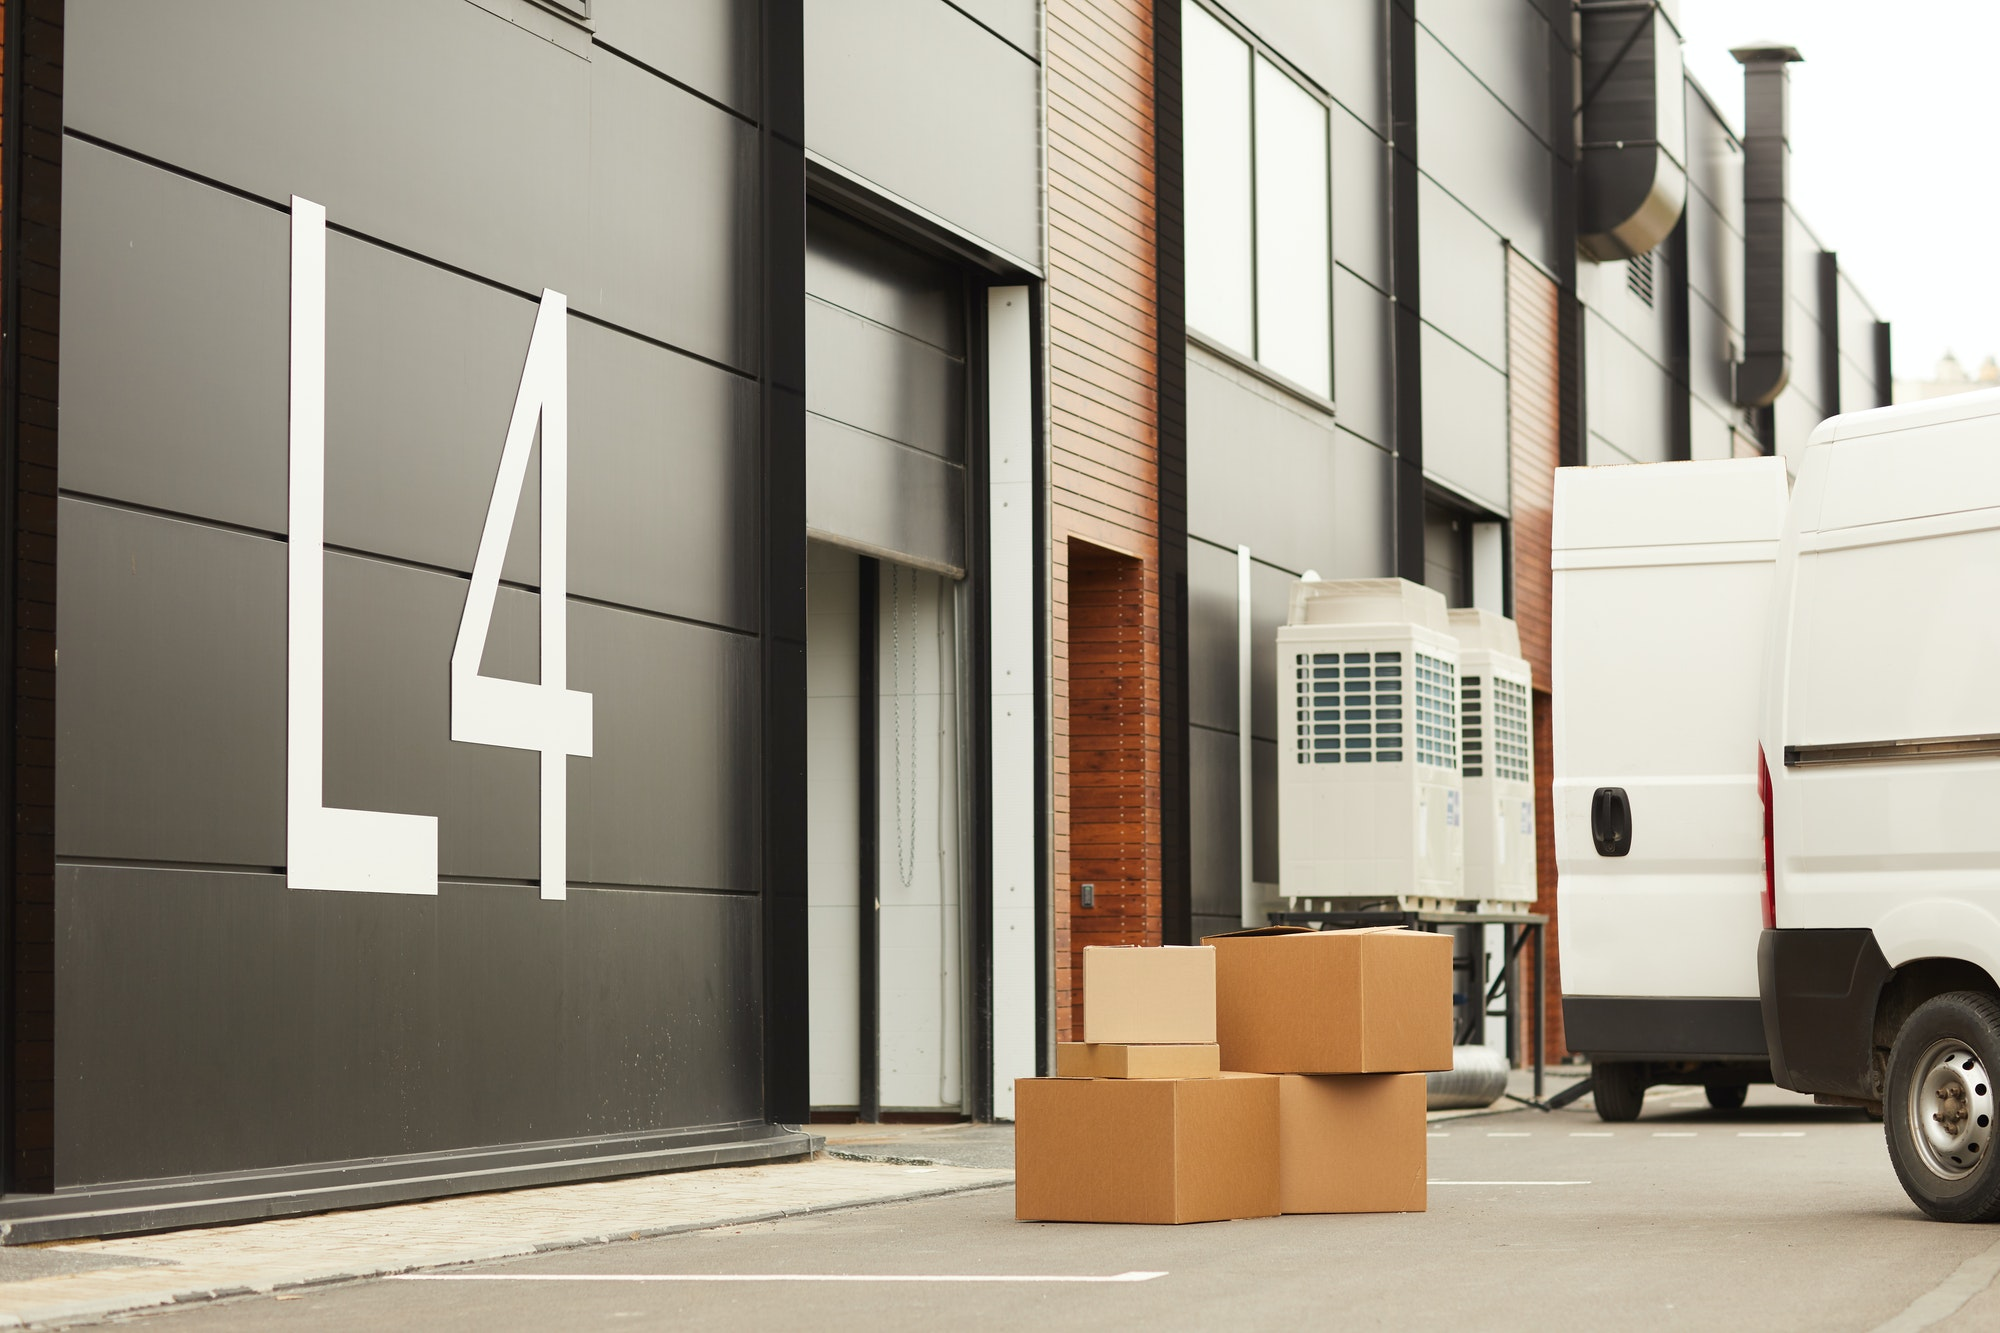 Warehouse for parcels and loads